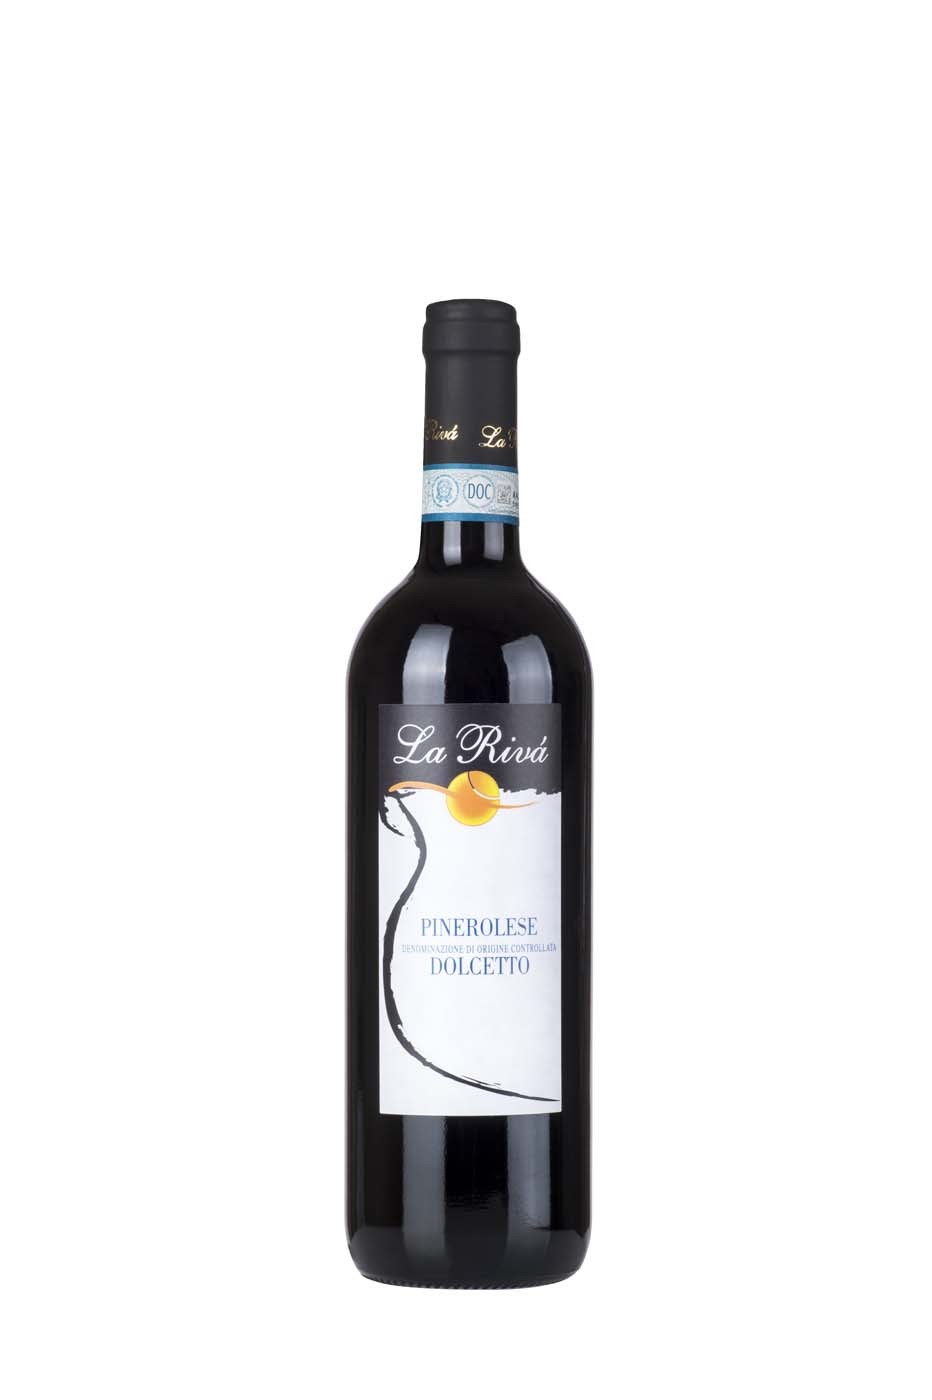 Pinerolese doc Dolcetto